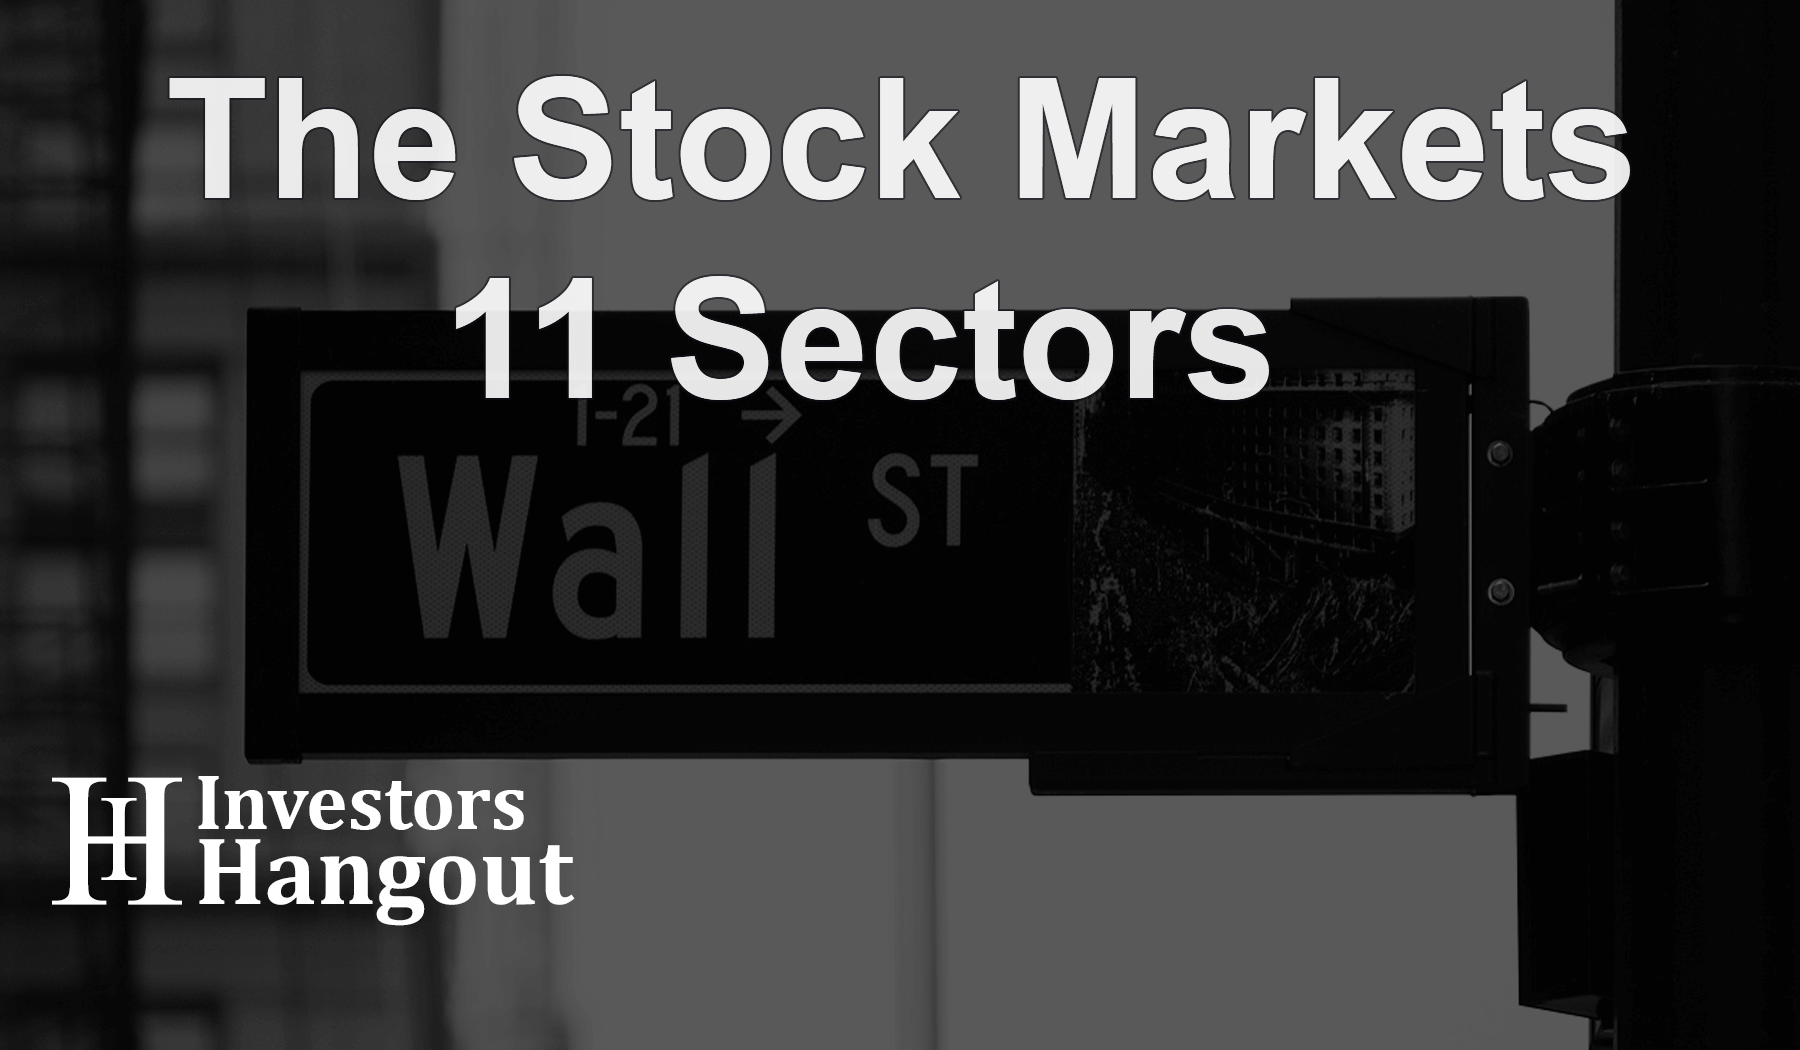 The Stock Markets 11 Sectors